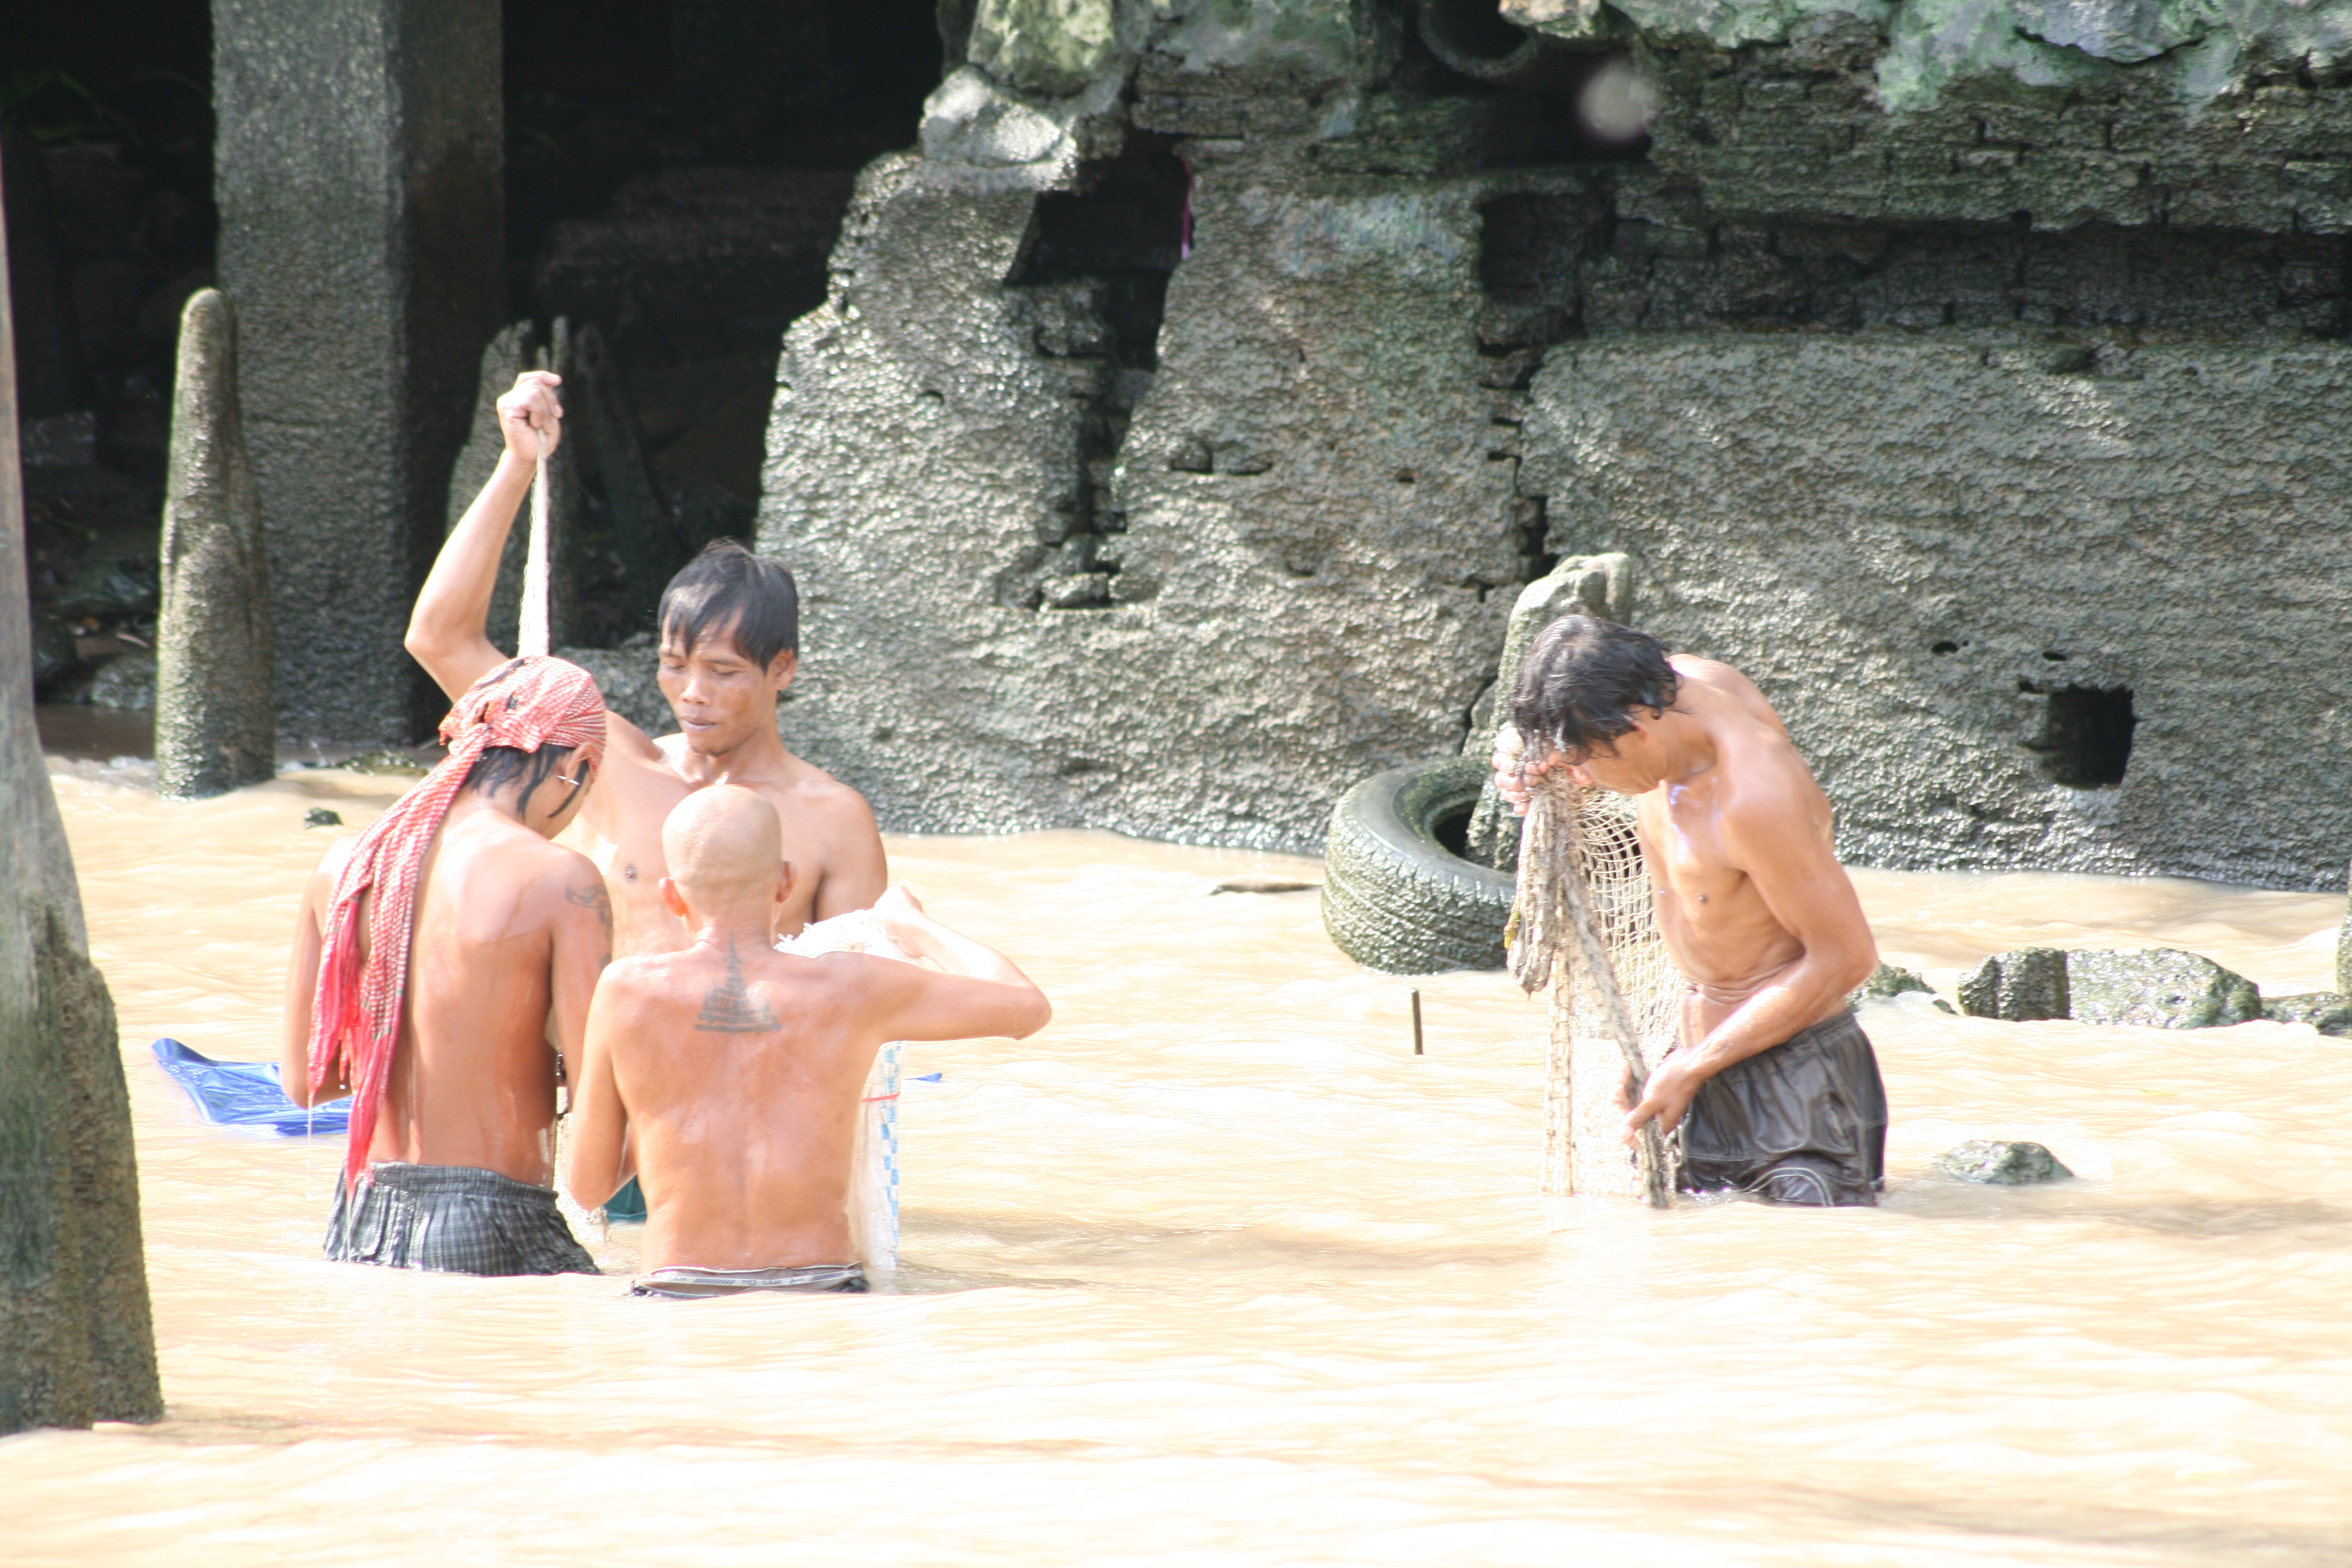 men washing in river, Thailand